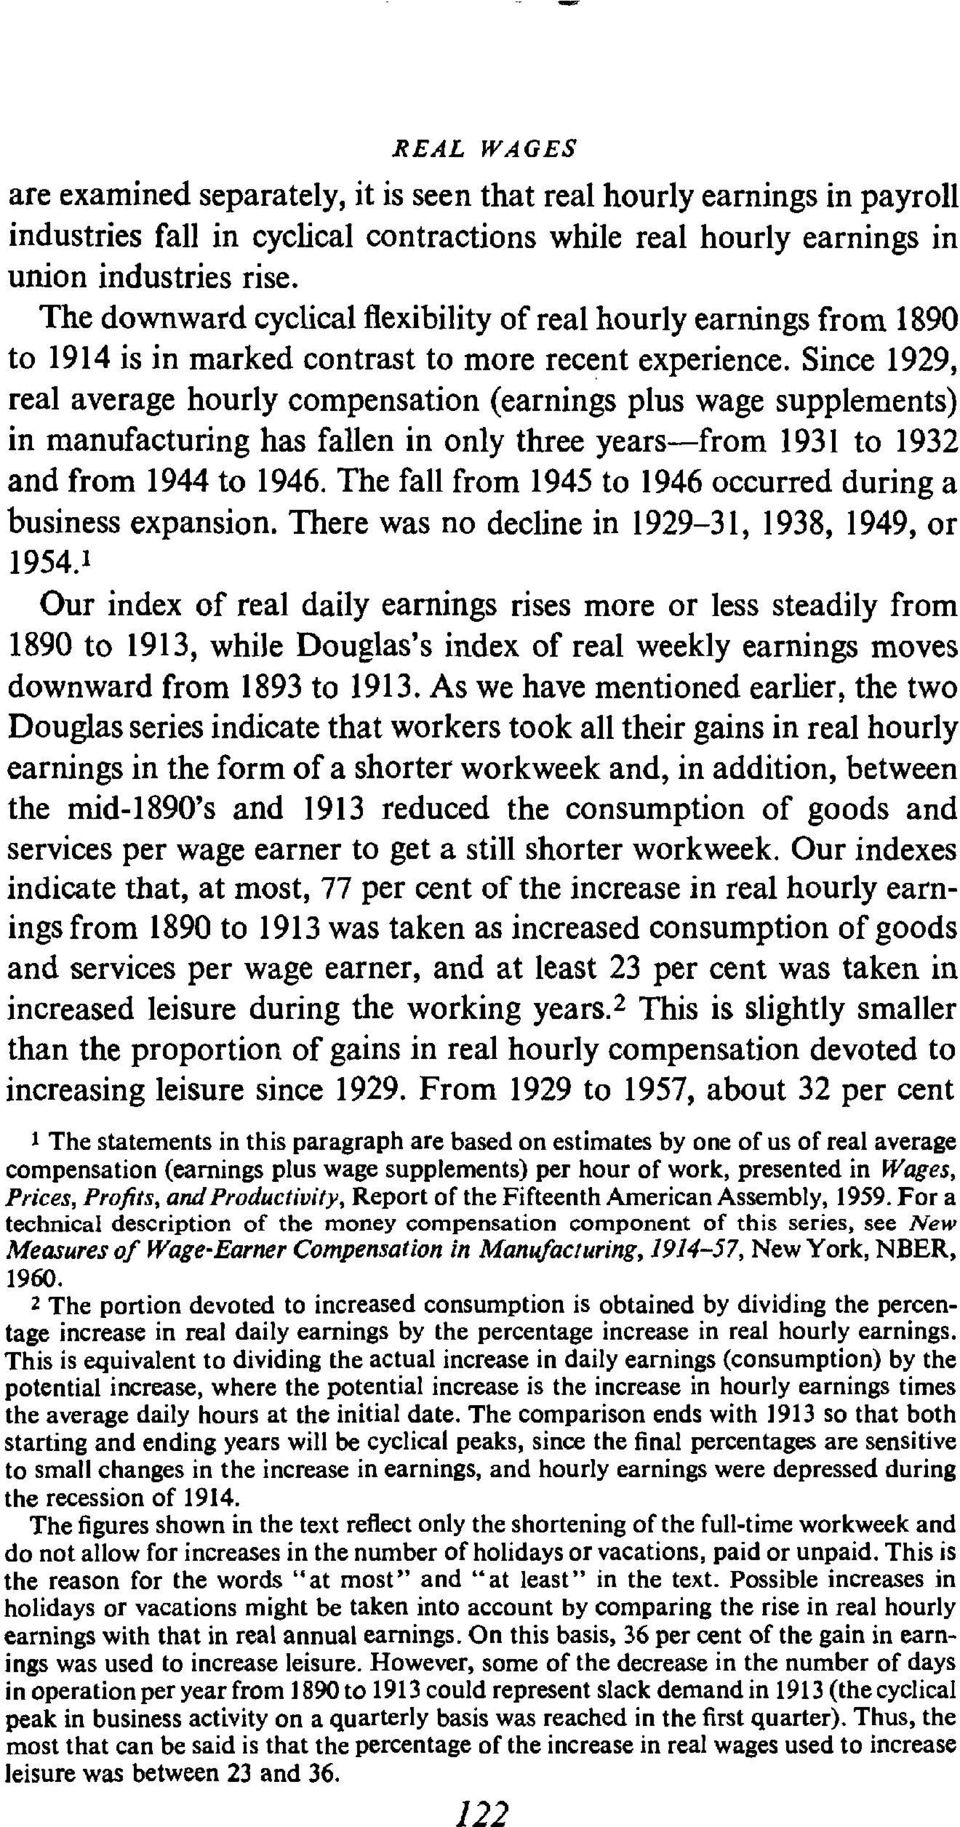 Since 1929, real average hourly compensation (earnings plus wage supplements) in manufacturing has fallen in only three years from 1931 to 1932 and from 1944 to 1946.